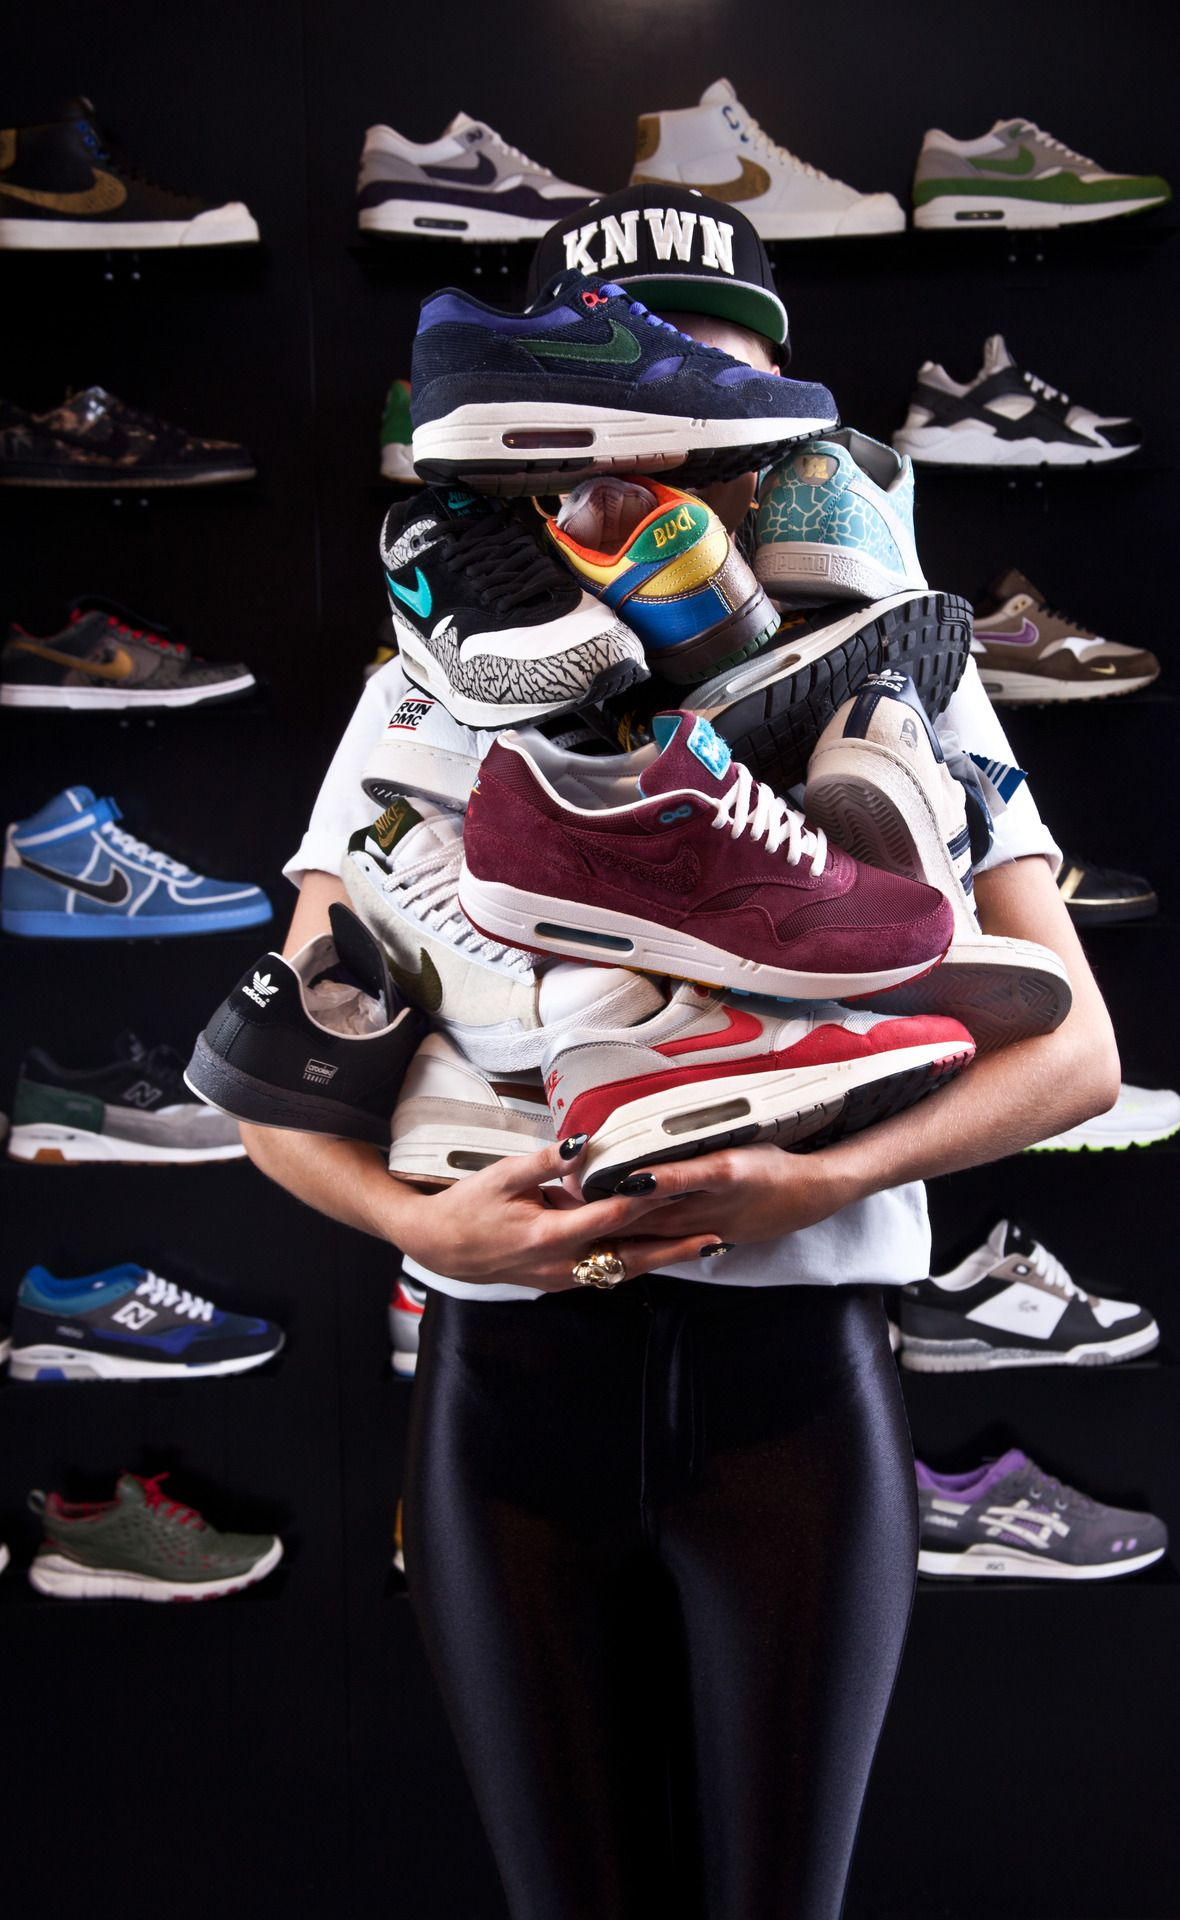 How many sneakers do ya have? Not enough!!;)